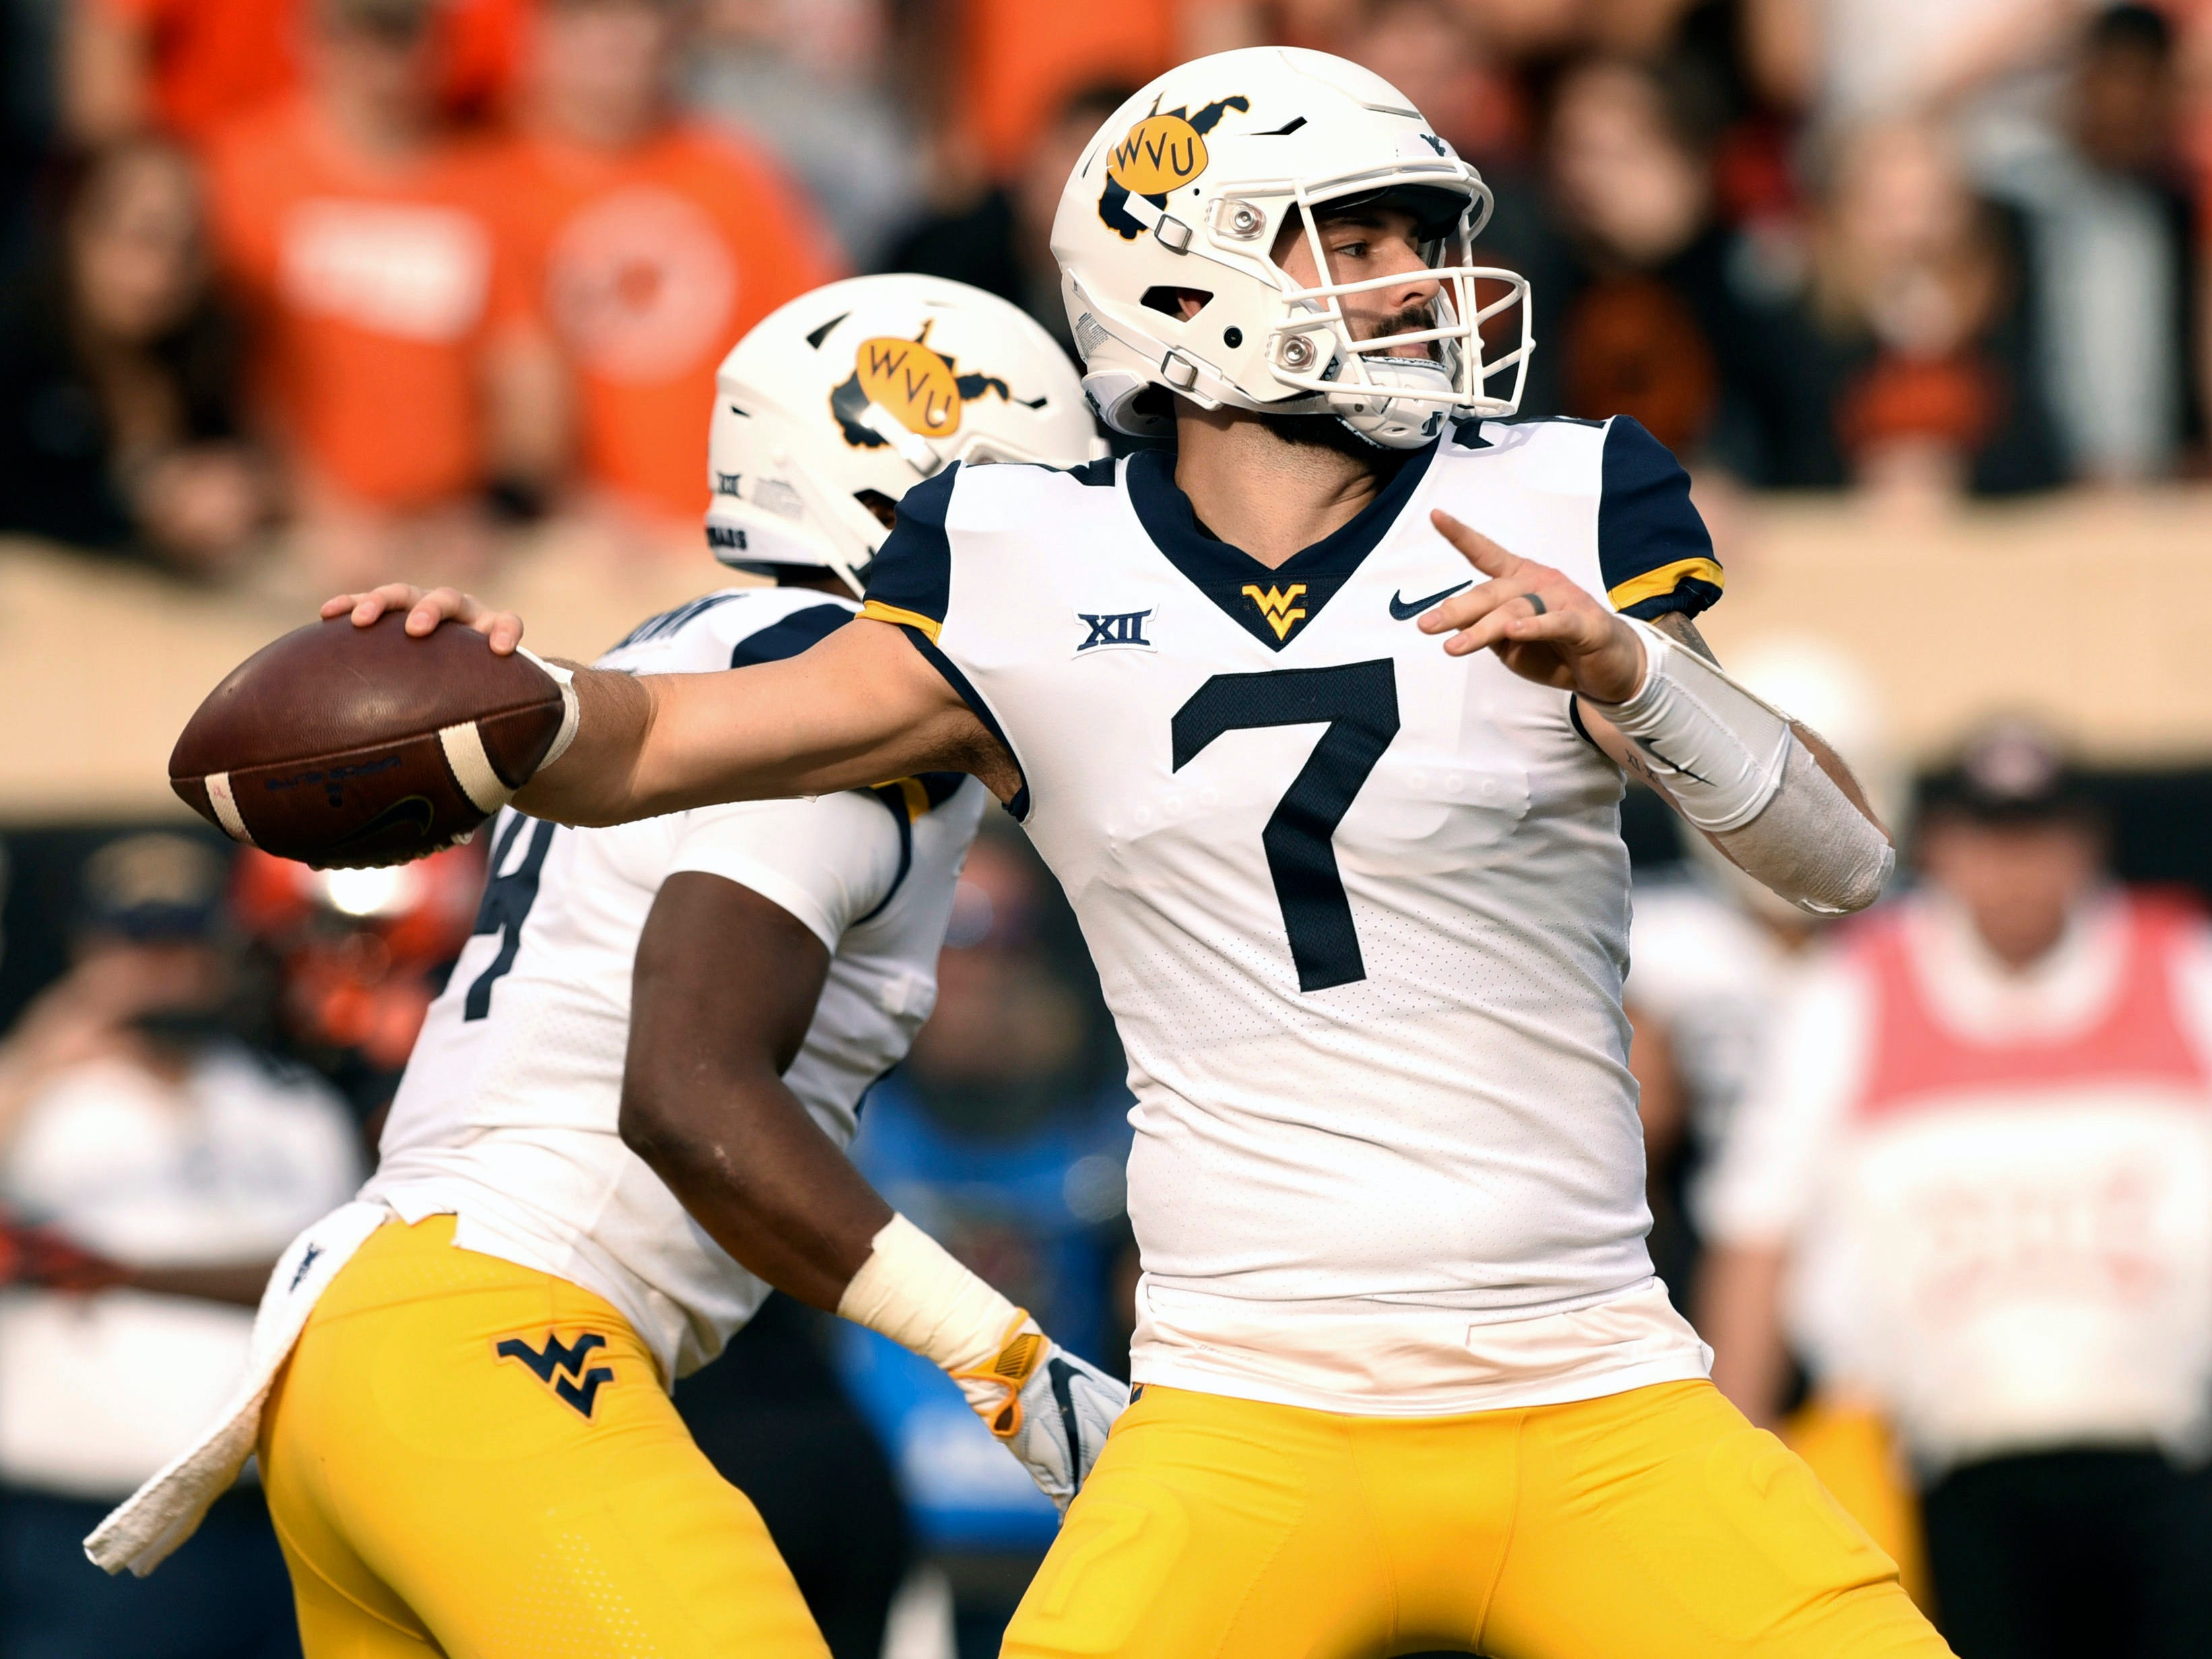 15. West Virginia (8-2) | Last game: Lost to Oklahoma State, 45-41 | Previous ranking: 10